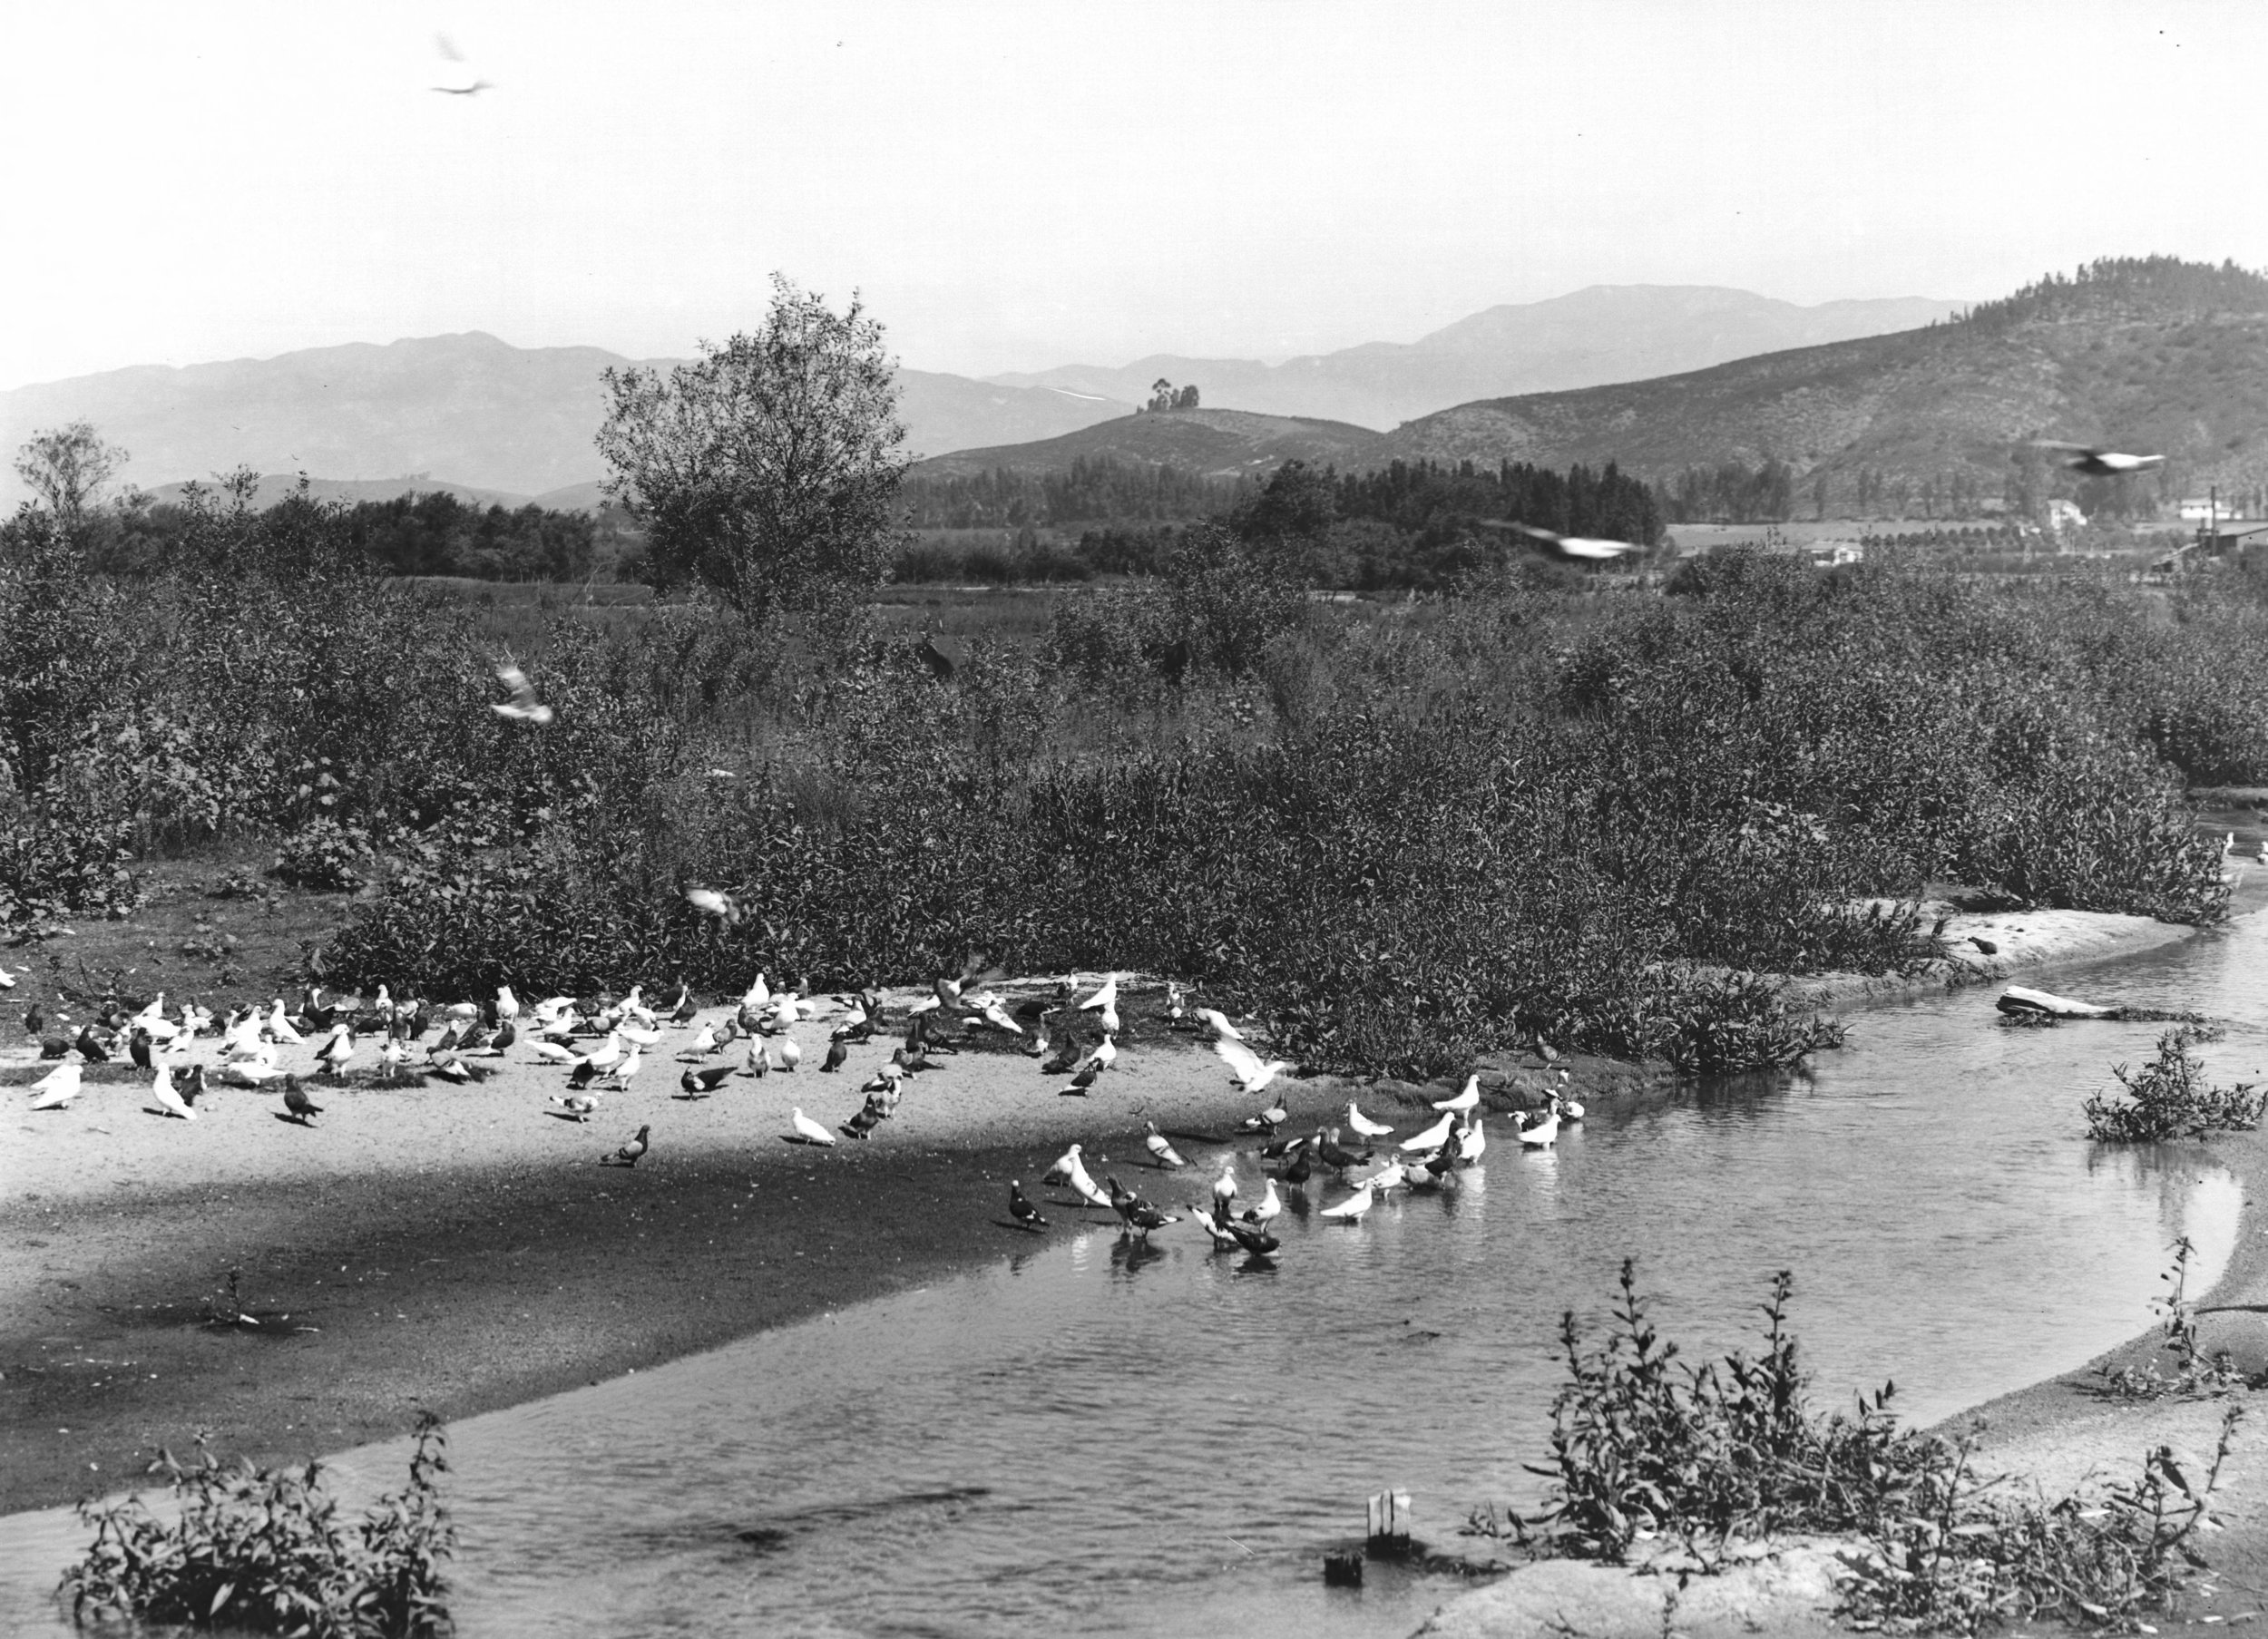 Pigeons in the Los Angeles River on a pigeon ranch.Native shrubs and bushes along the shore. Taken near Glassell Park in the western Cypress Park district of Los Angeles, just past the Riverside bridge at the junction of Verdugo Road and San Fernando Road, ca. 1900 [public domain].